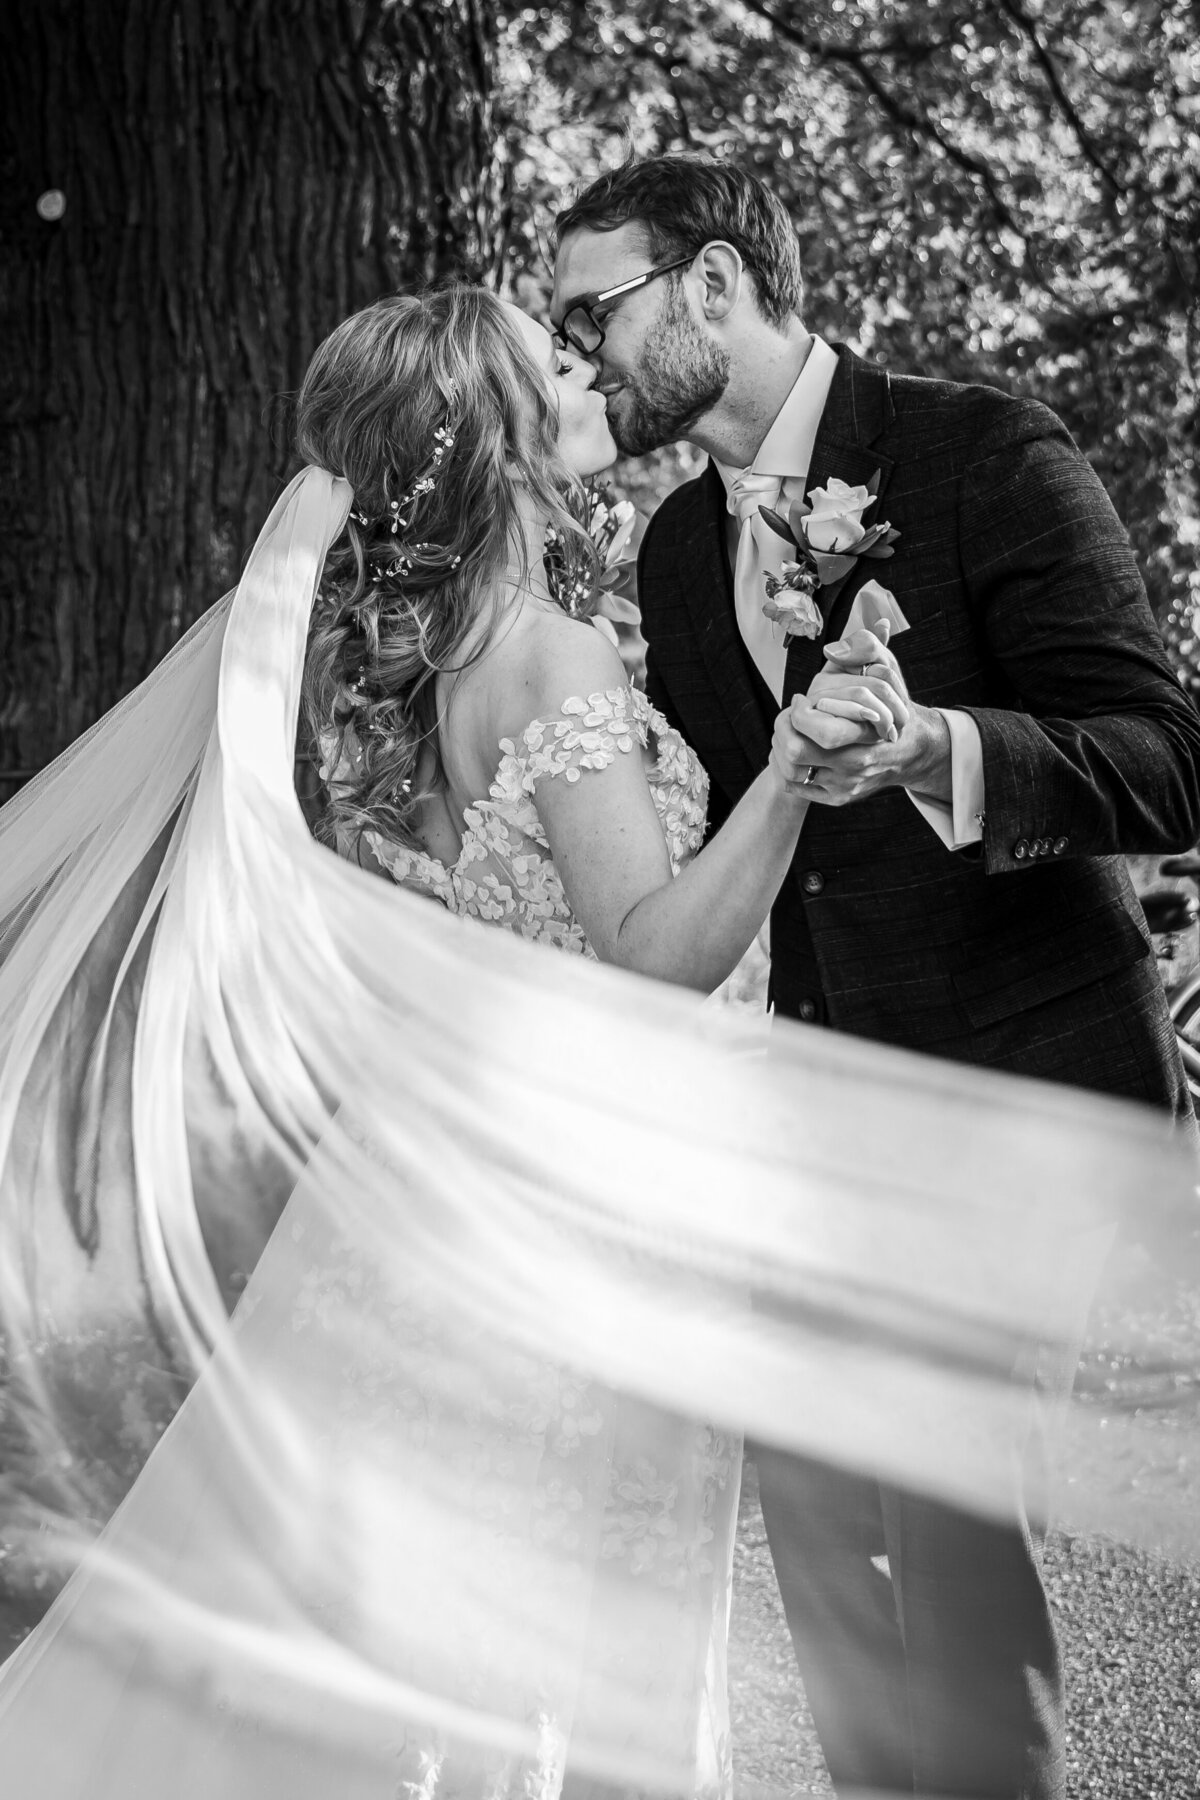 A bride and groom kissing with her veil blowing in the wind